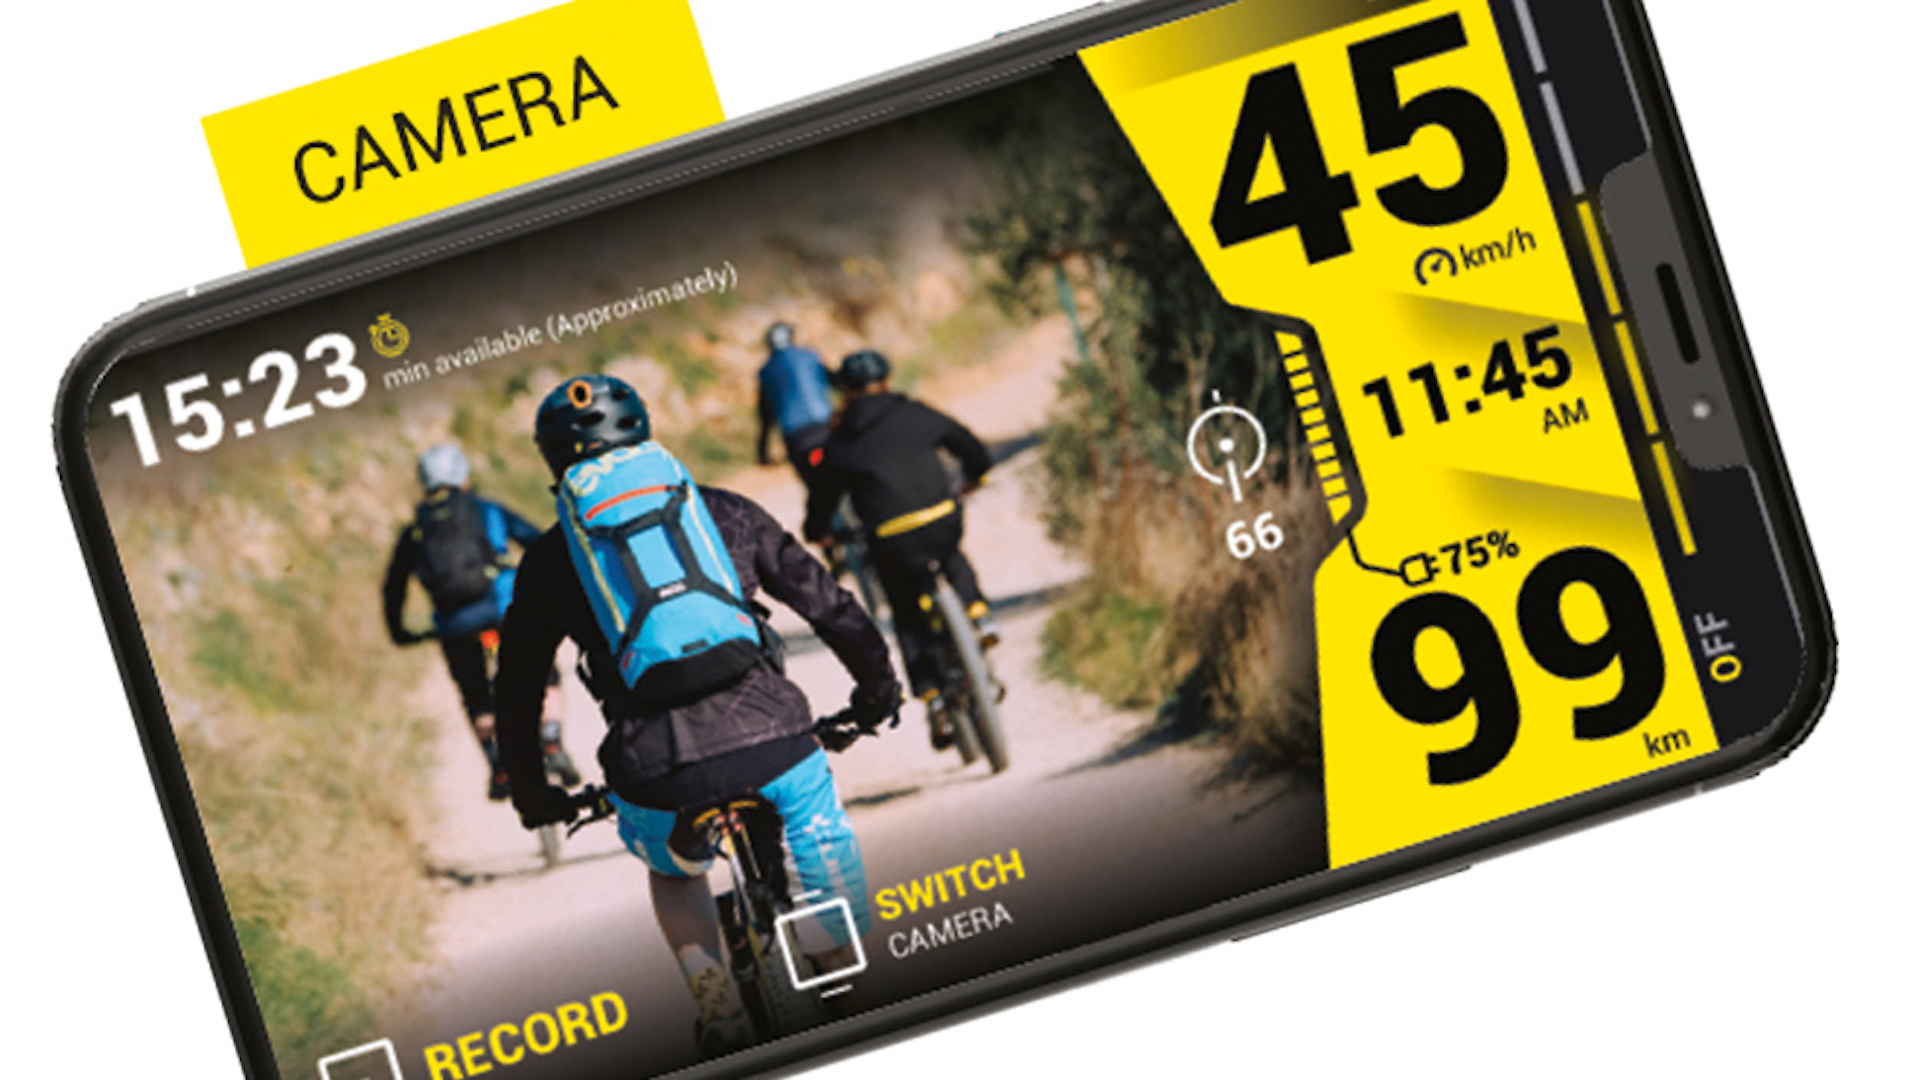 Track your stats with the onboard cameras and sensors.